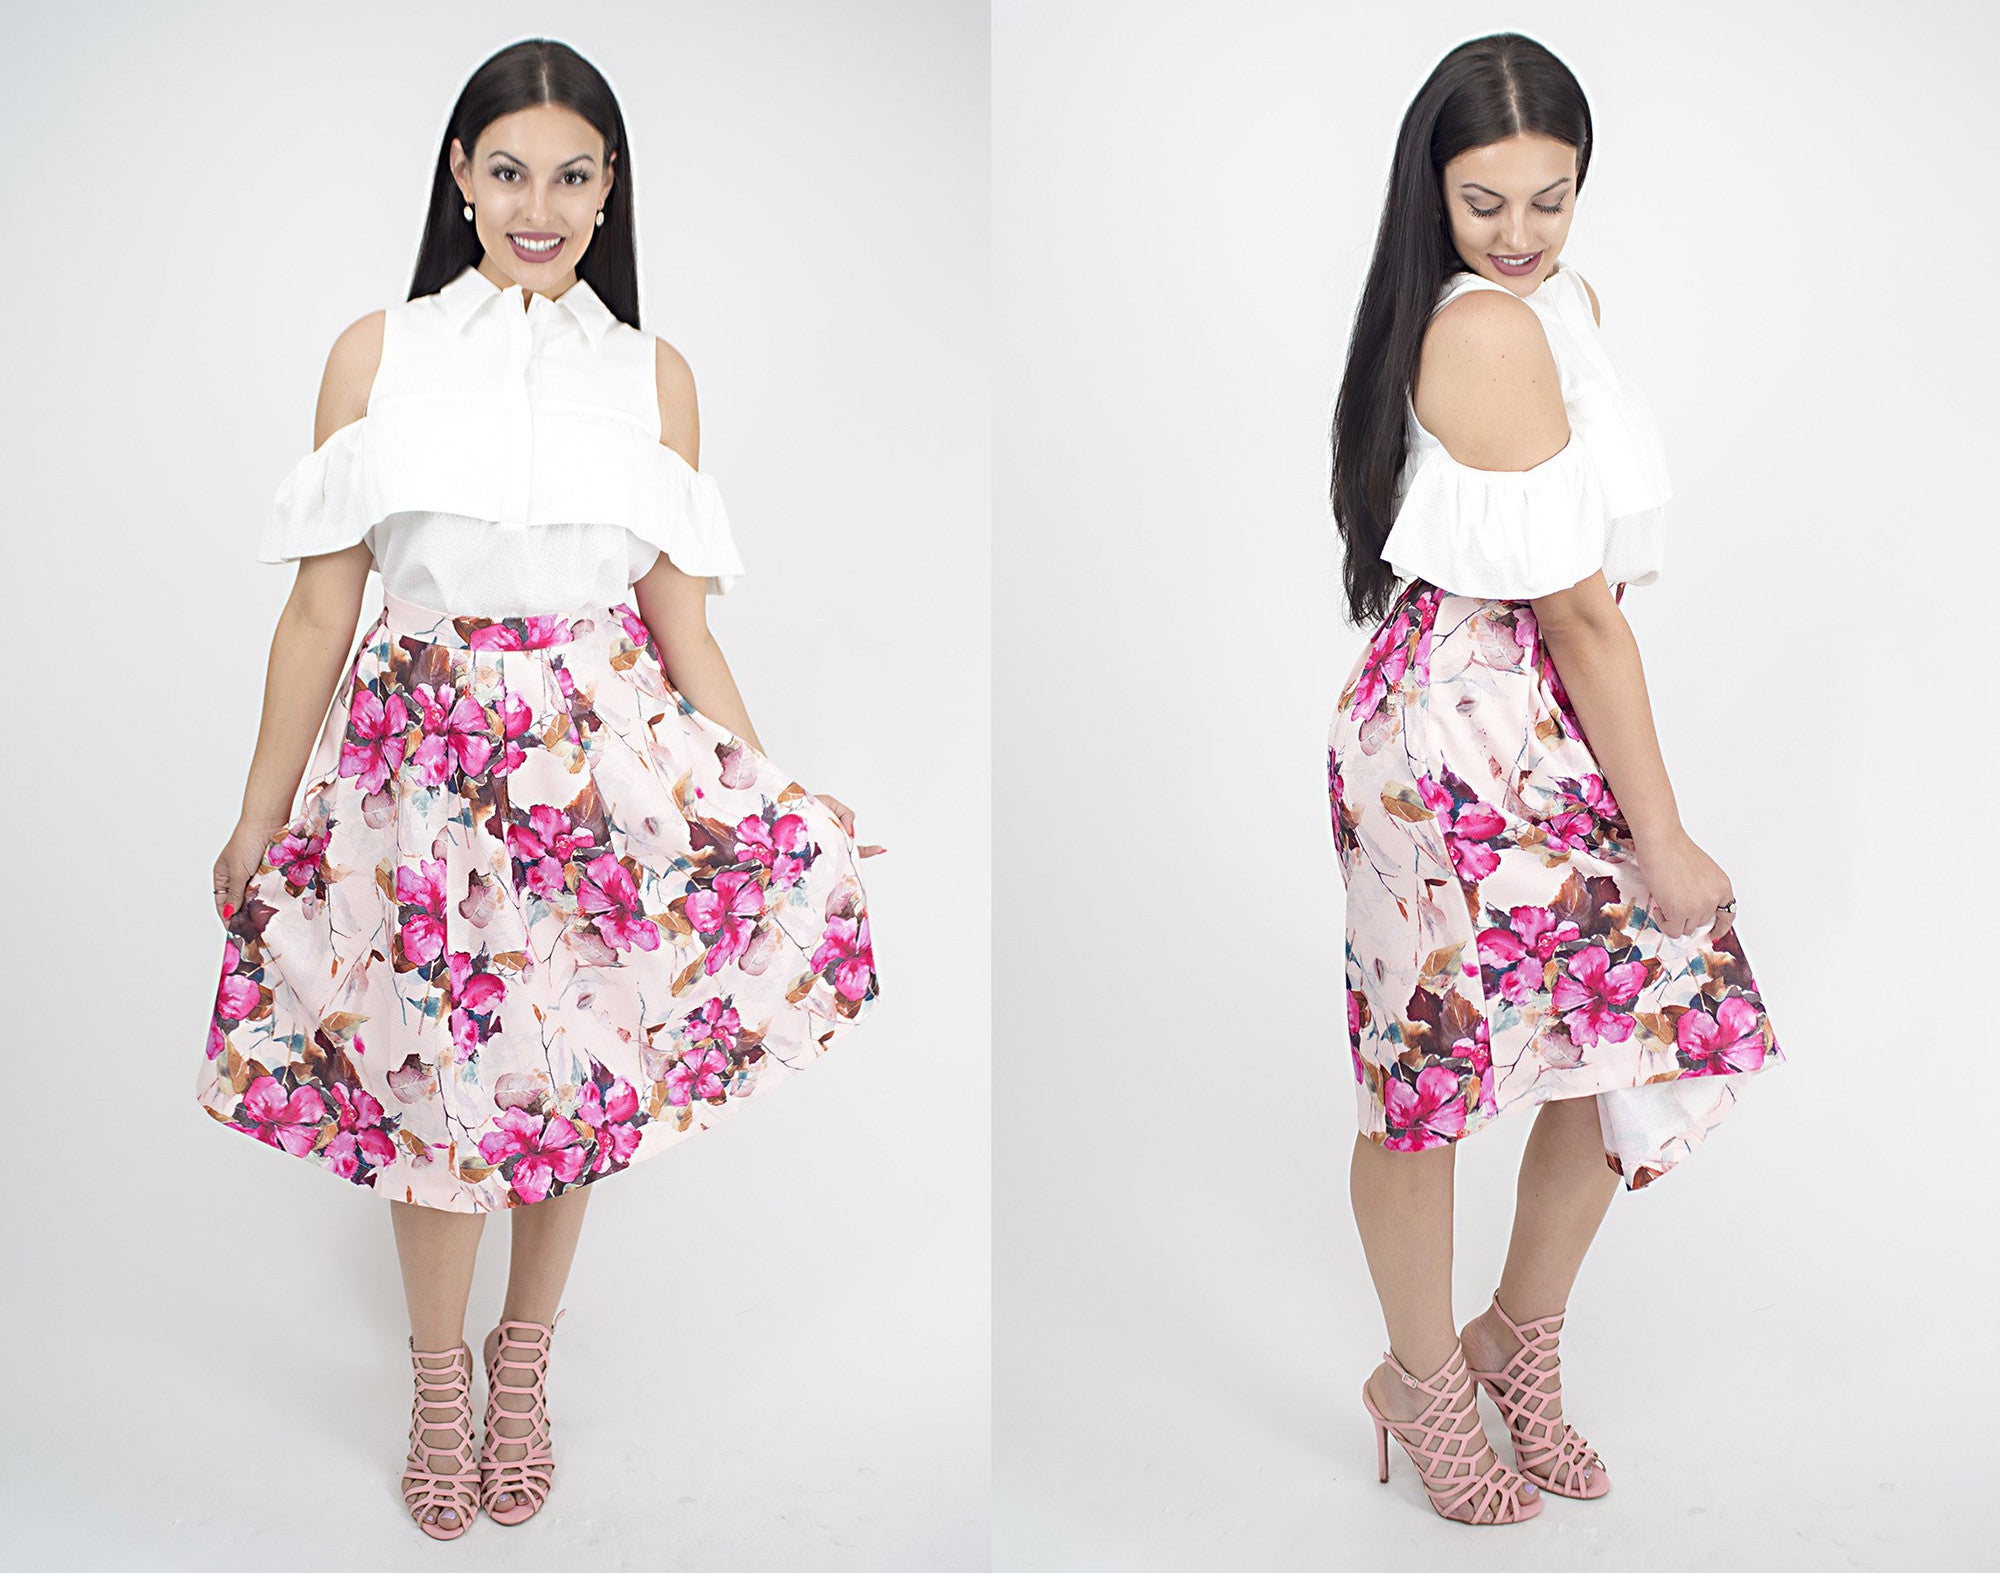 Women's floral midi skirt at Eccentrics Boutique. Affordable women's clothing boutique.